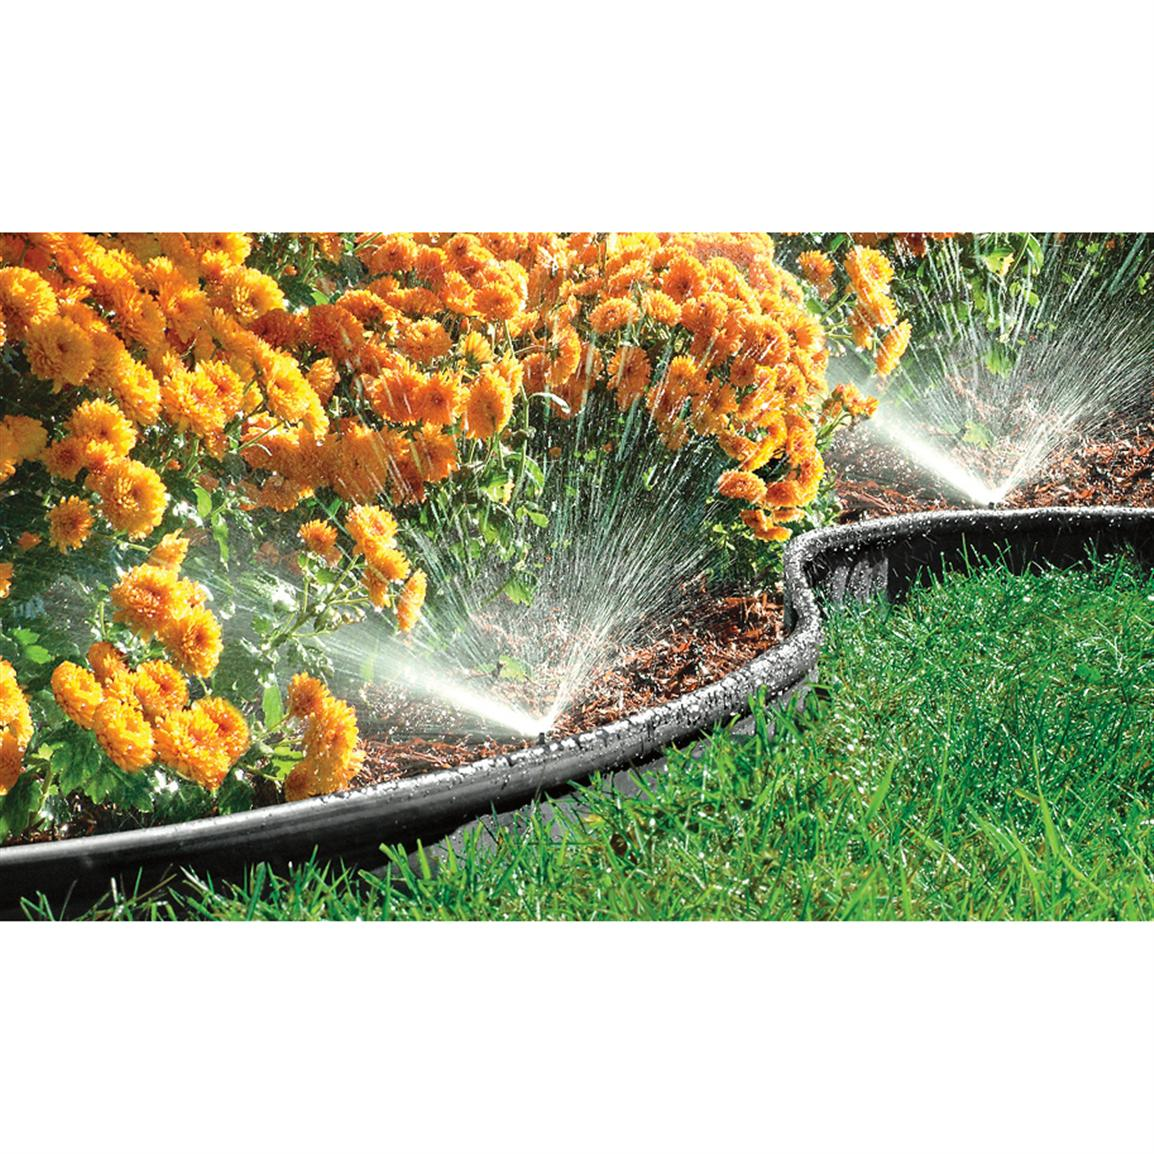 HOSE PIPE GARDEN WATER IRRIGATION SYSTEM WATERING PLANTS